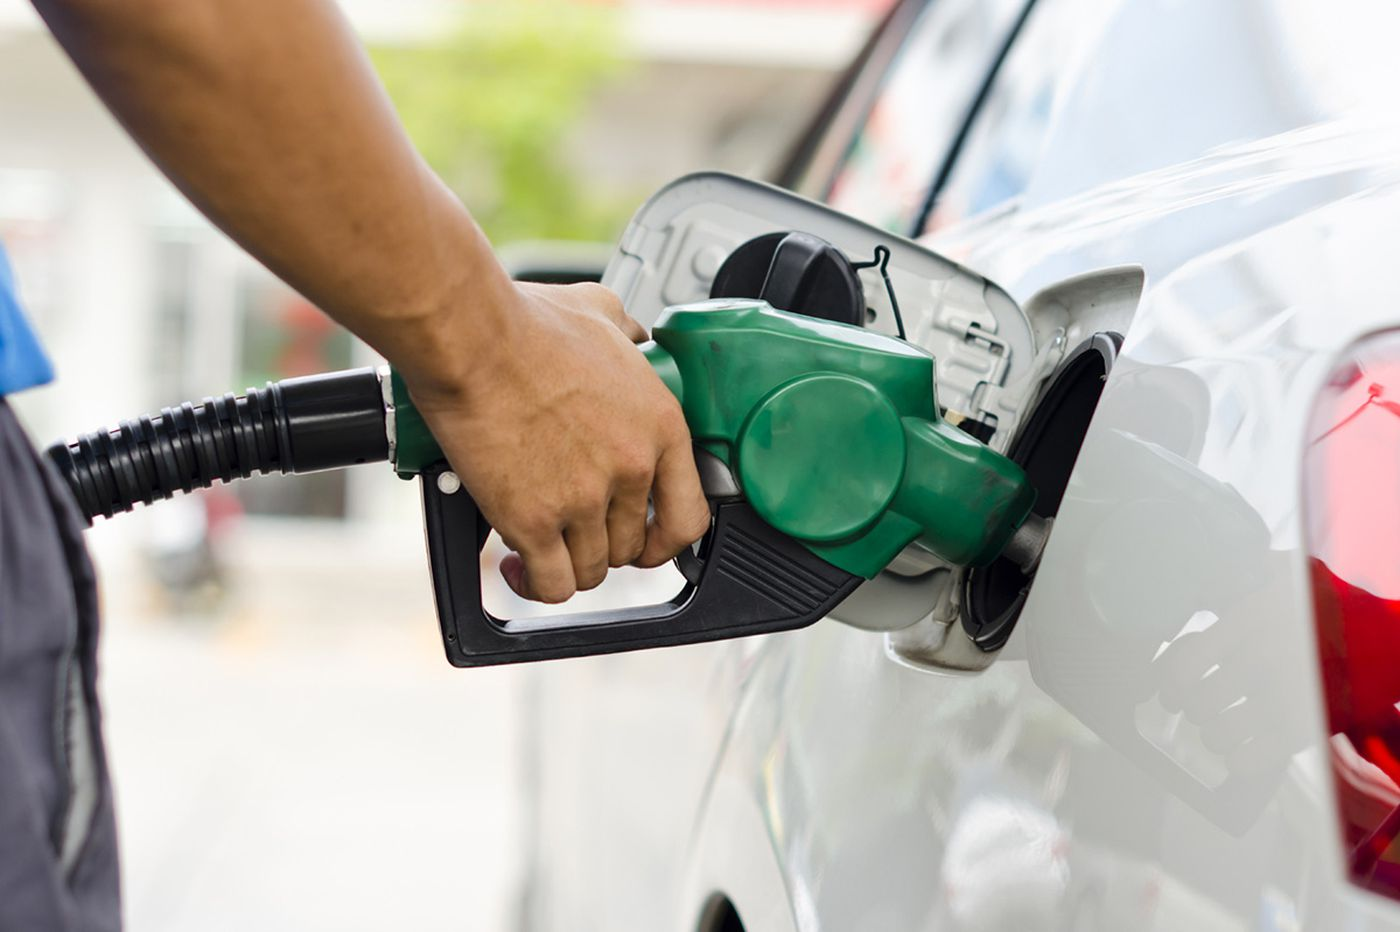 Proposed fuel price hike could have strained sectors of Tanzania's economy destructivel